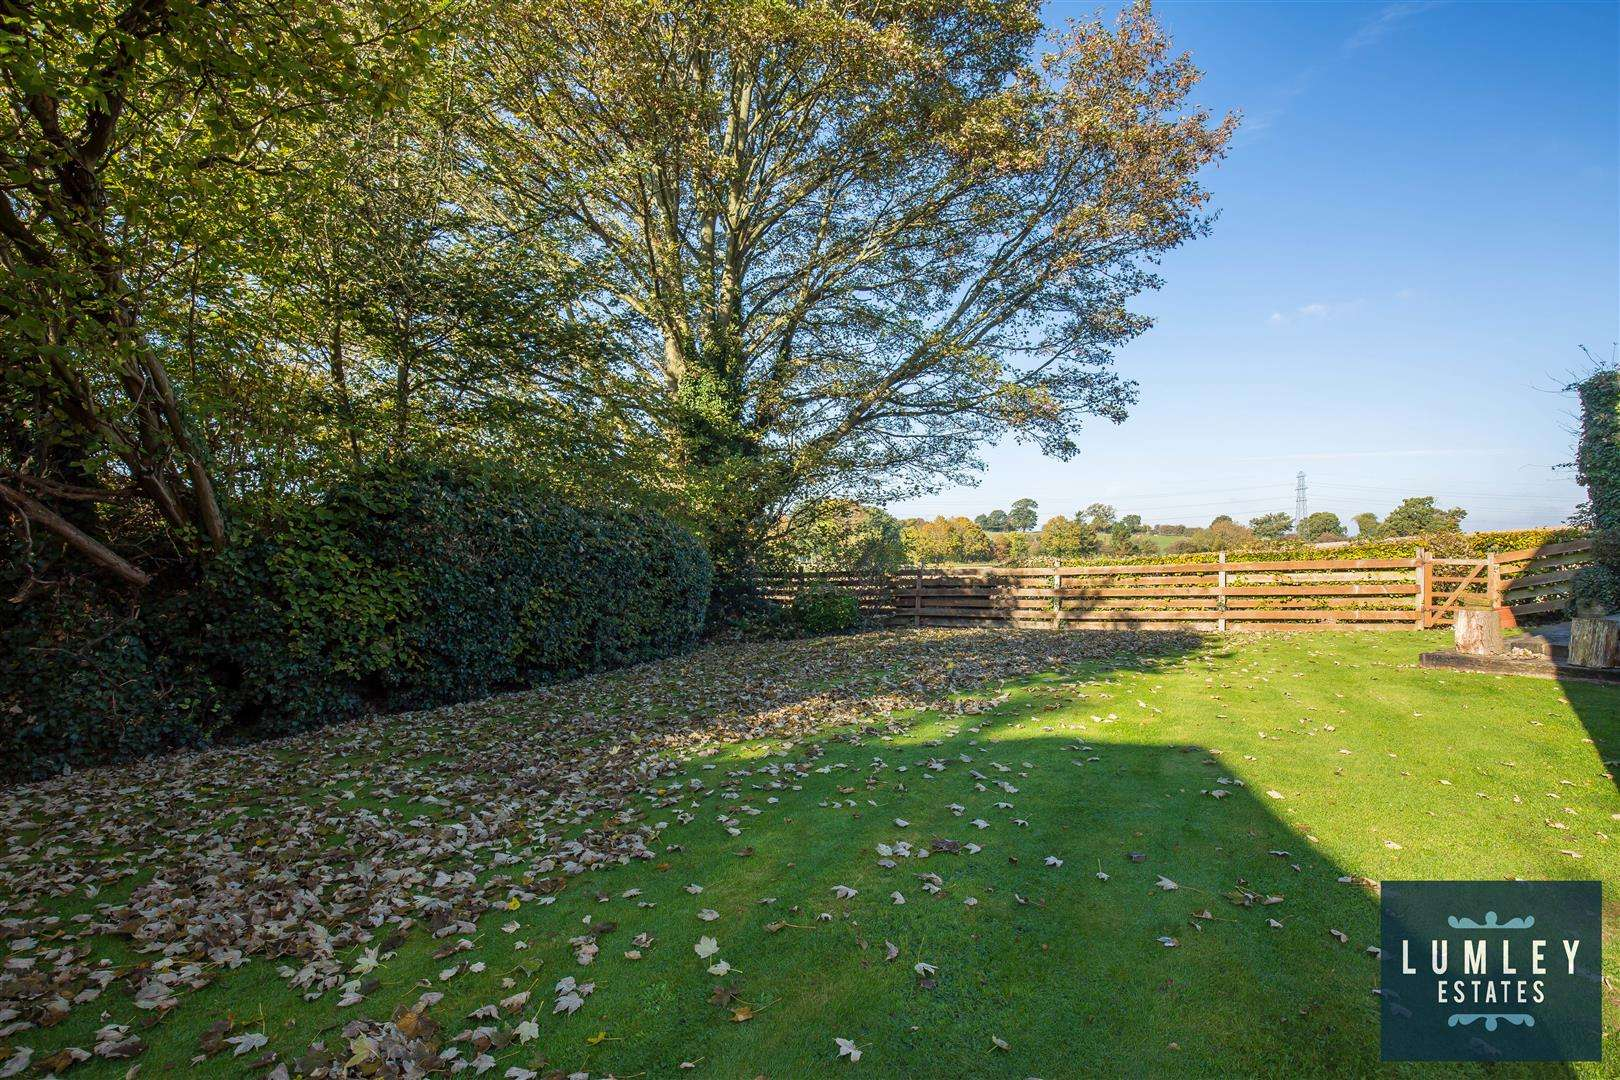 6 bed to rent - (Property Image 17)